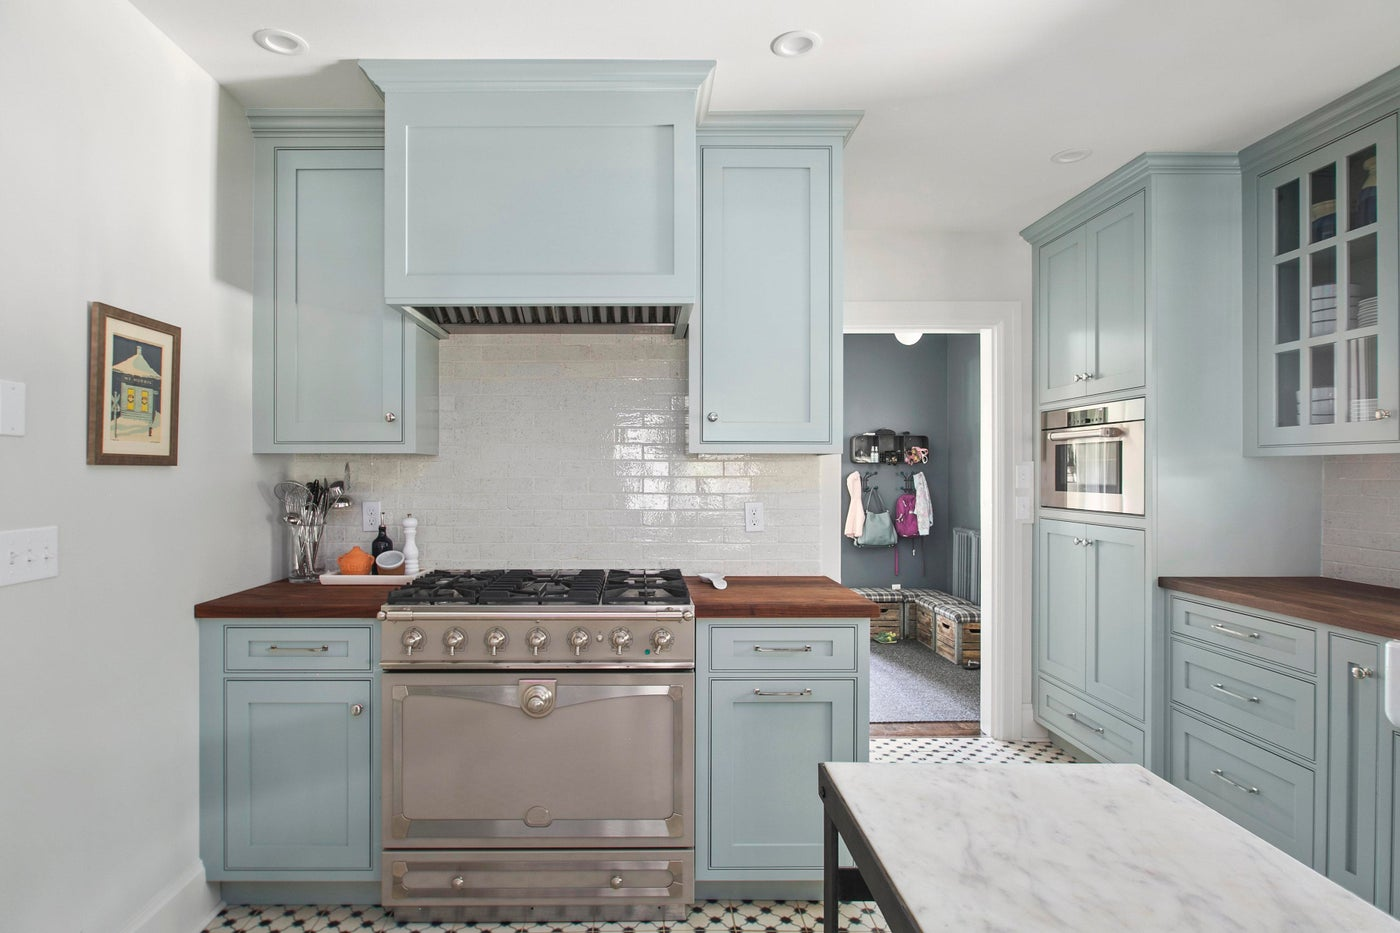 North End Boise Kitchen, concrete tile, blue cabinets, wall steam oven